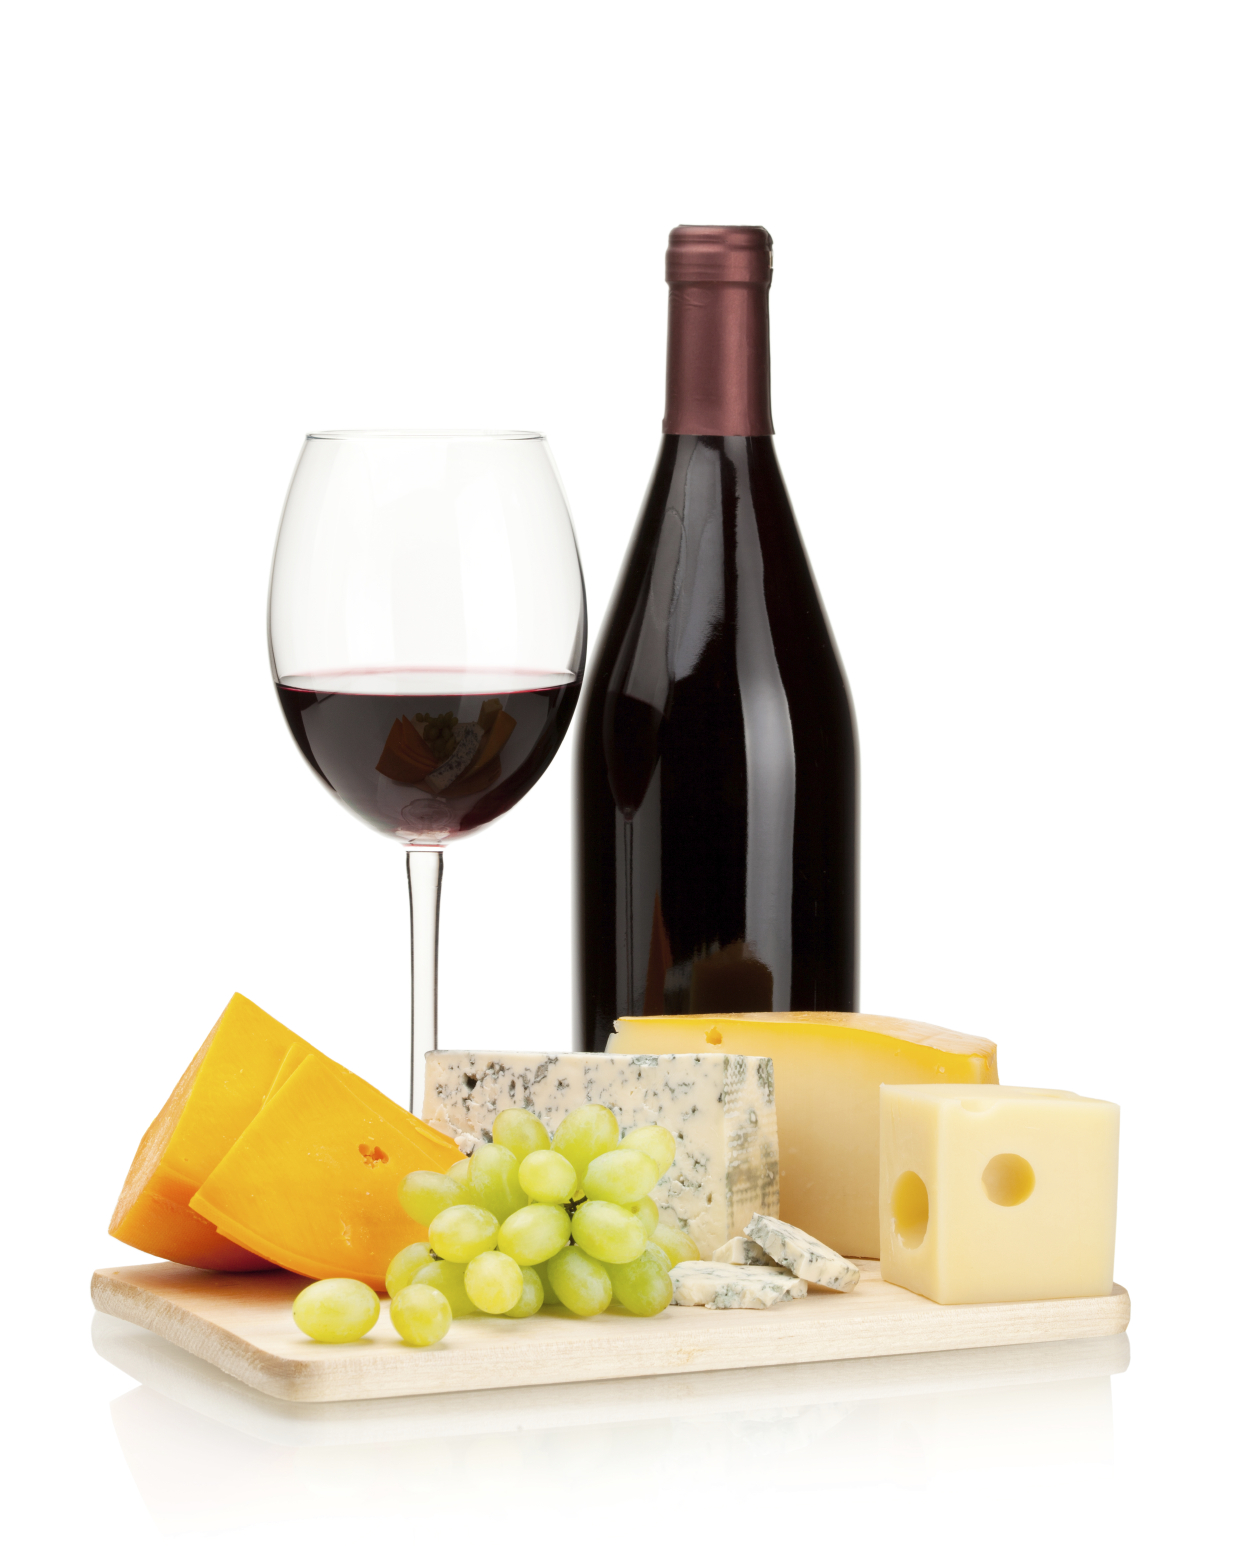 Wine and cheese images